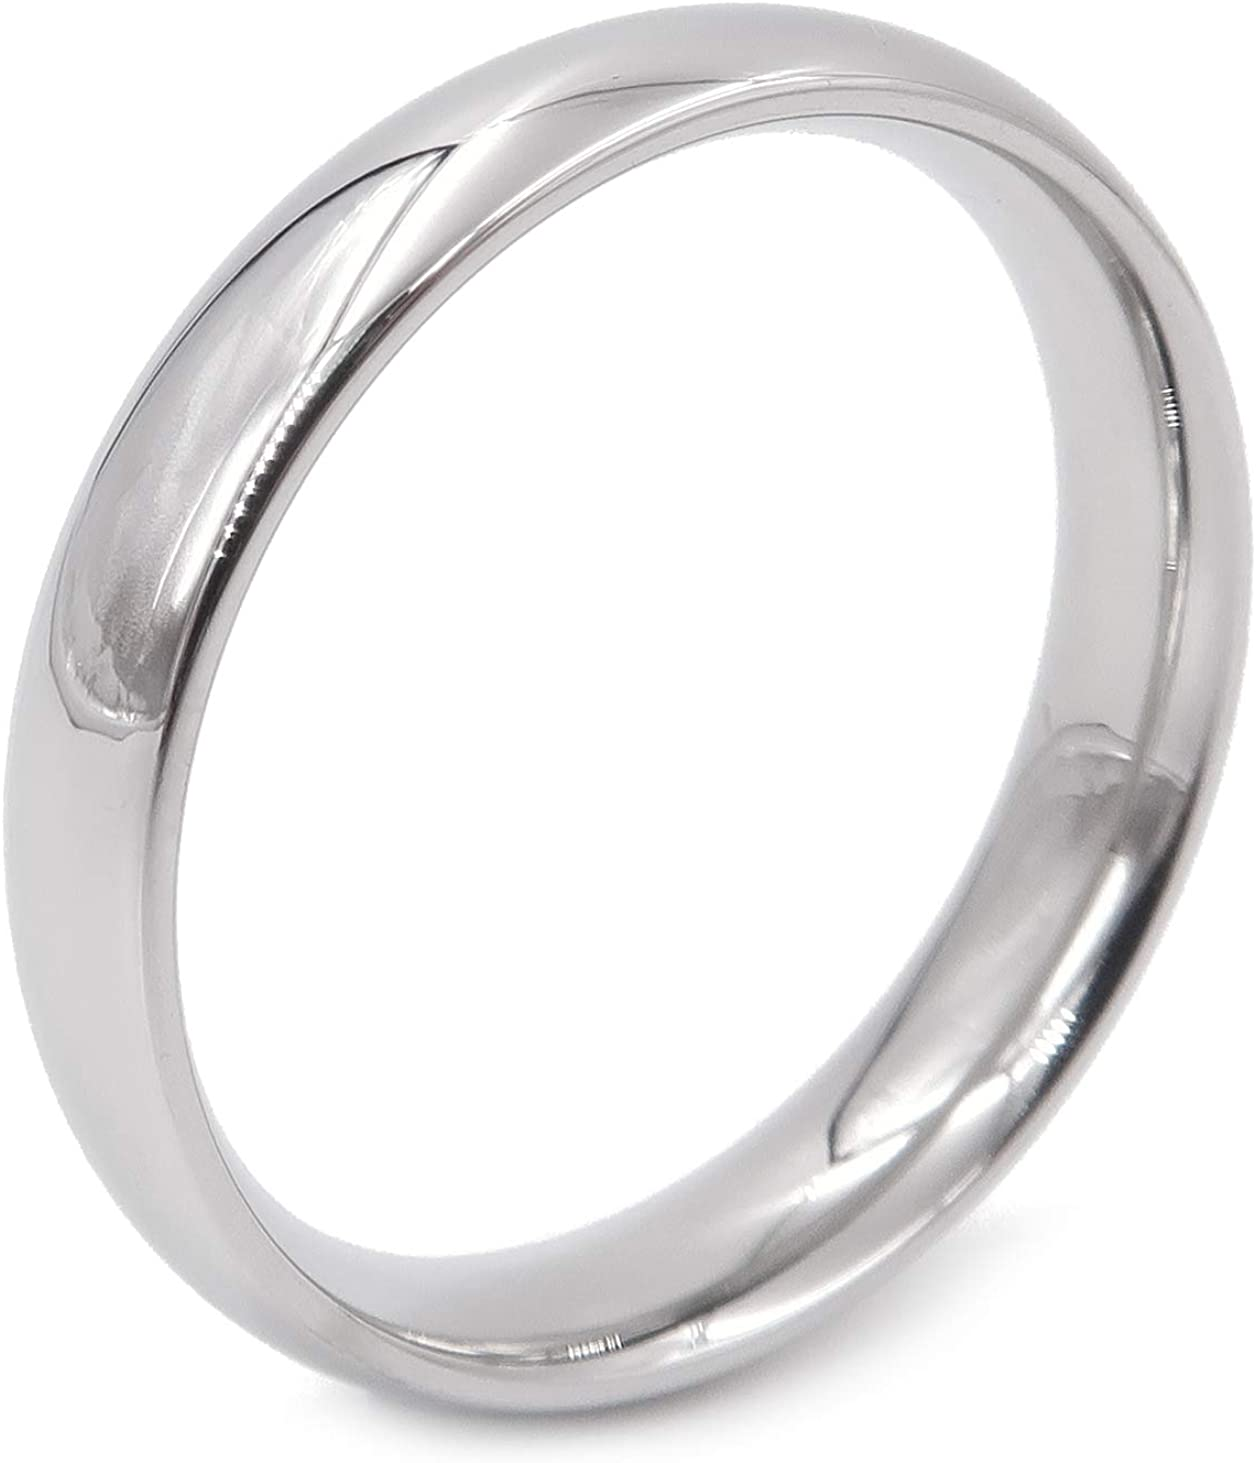 Steelmeup Stainless Steel Comfort Fit Wedding Band Durable Daily Ring Polish Gold/Silver Color 4mm Size 5-13